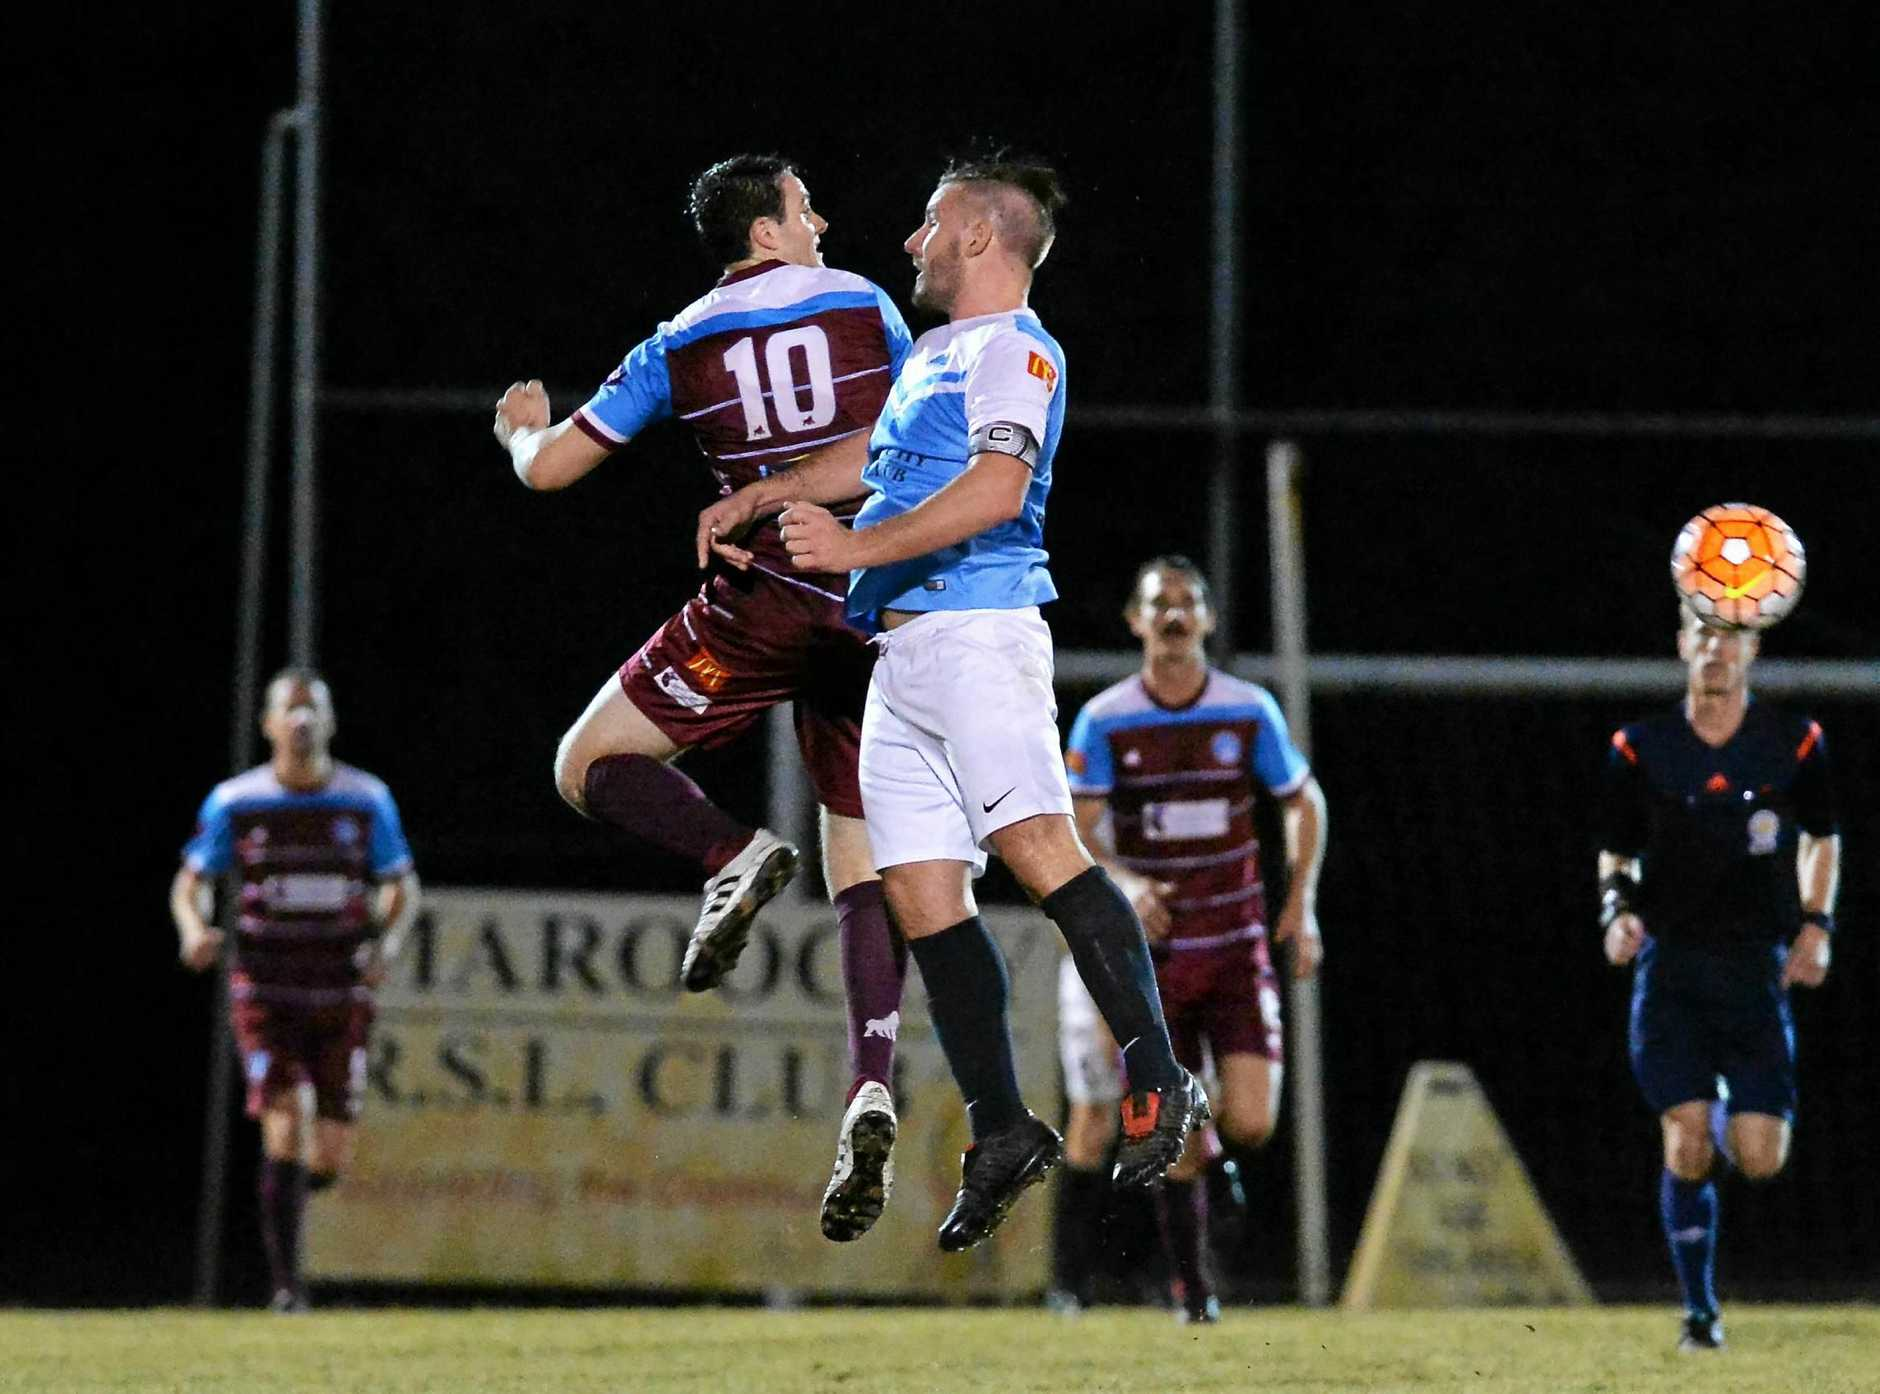 Jayden Davey goes high for the ball while playing for the Gympie Diggers.